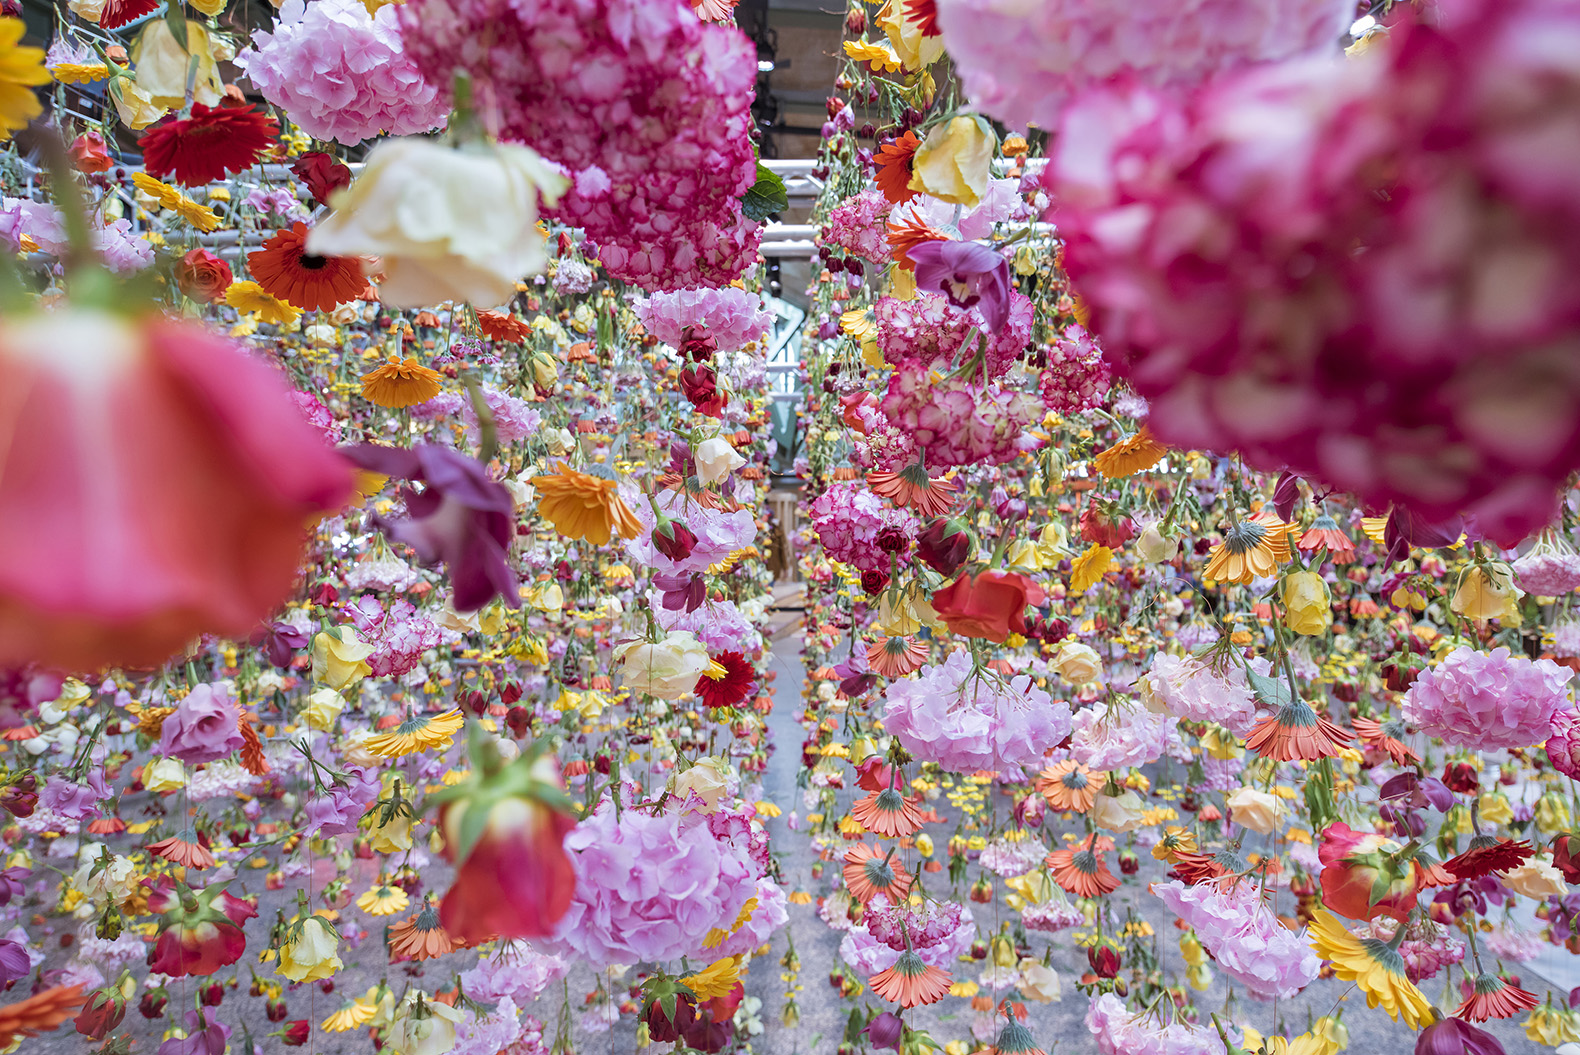 Rebecca louise laws 30000 hanging flowers greet spring in berlin garten garten by rebecca louise law rebecca louise law bikini berlin art mightylinksfo Choice Image